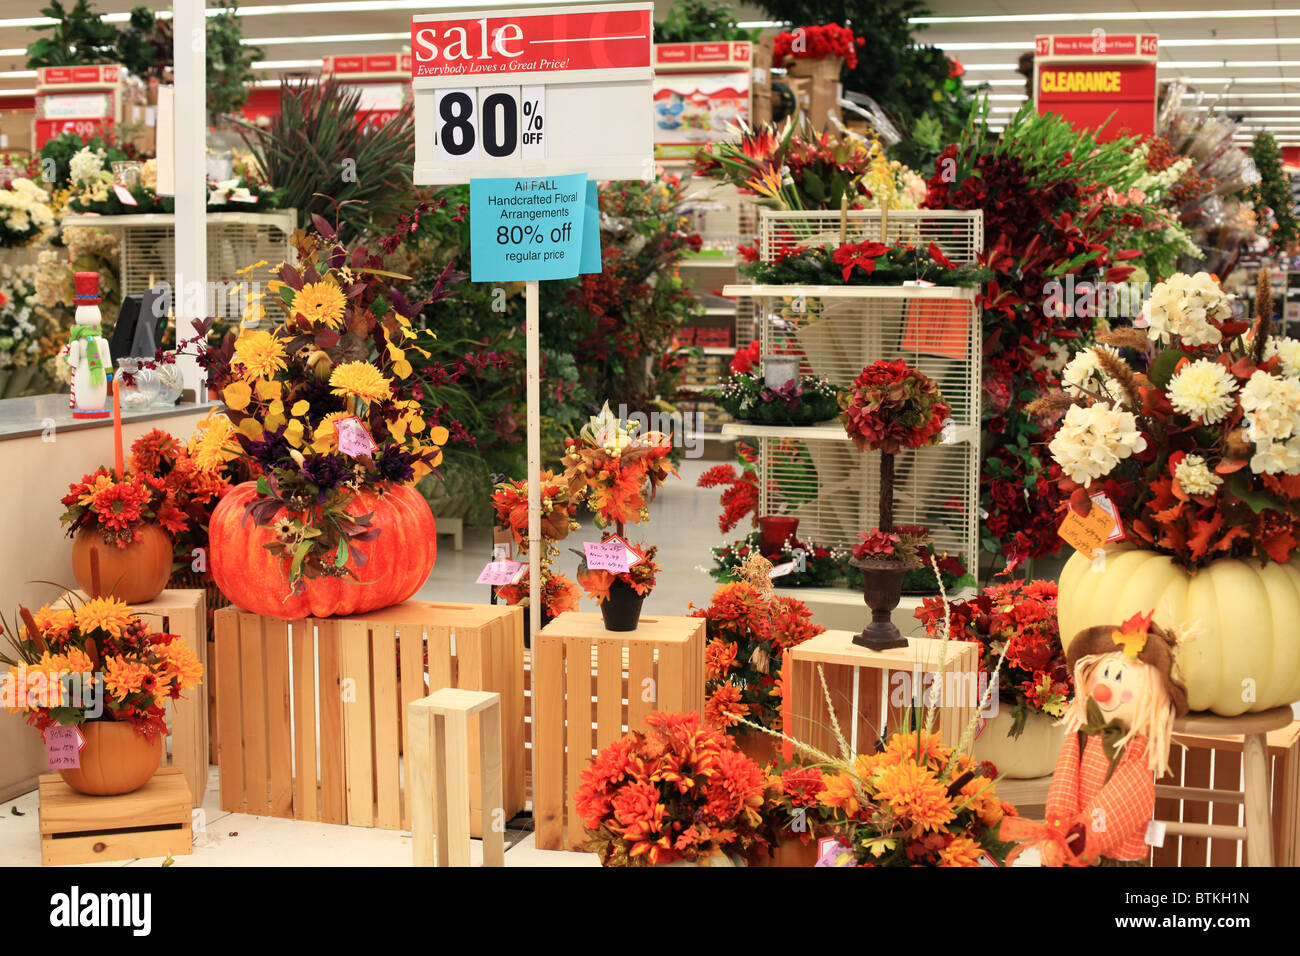 Halloween Decorations For Sale In A Canadian Store Stock